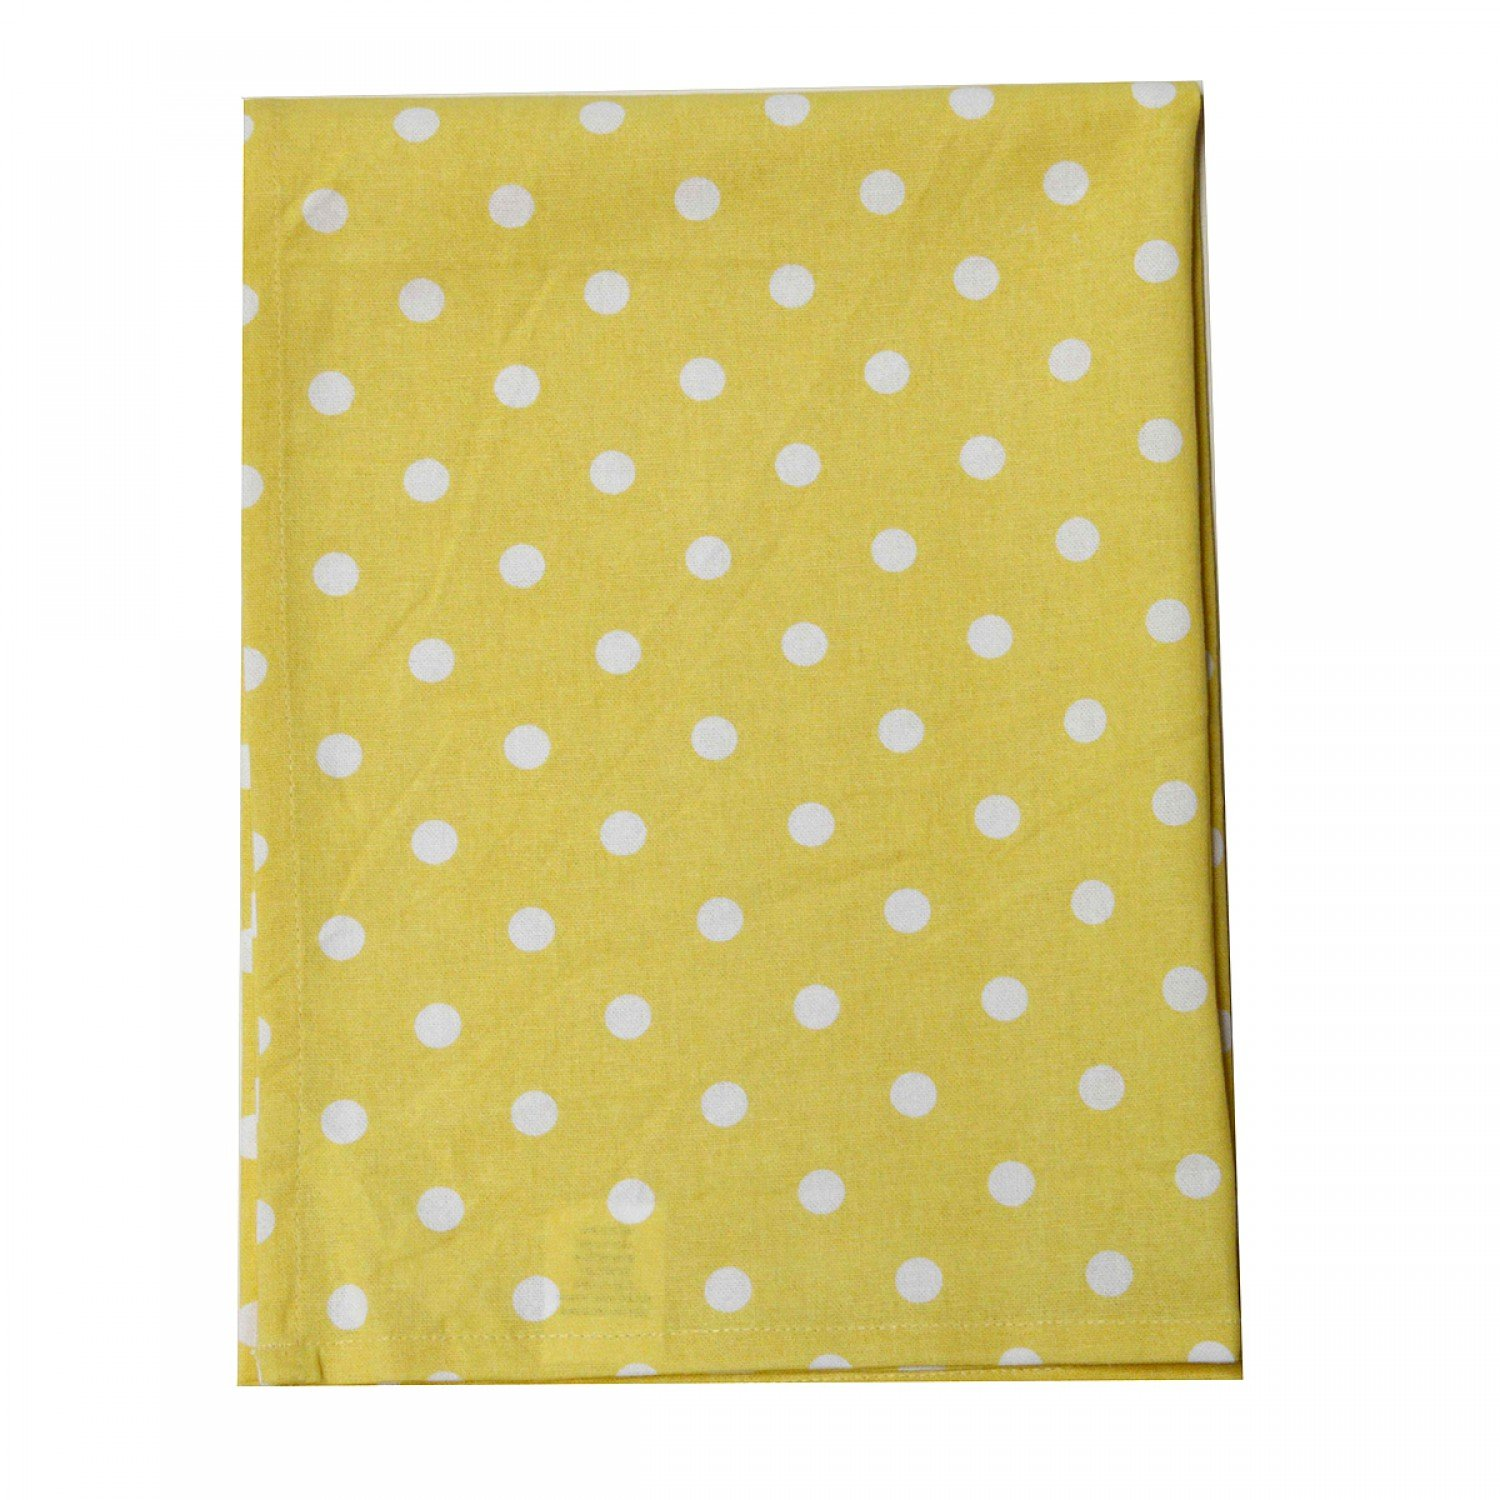 TTWL Polka Dots on Yellow